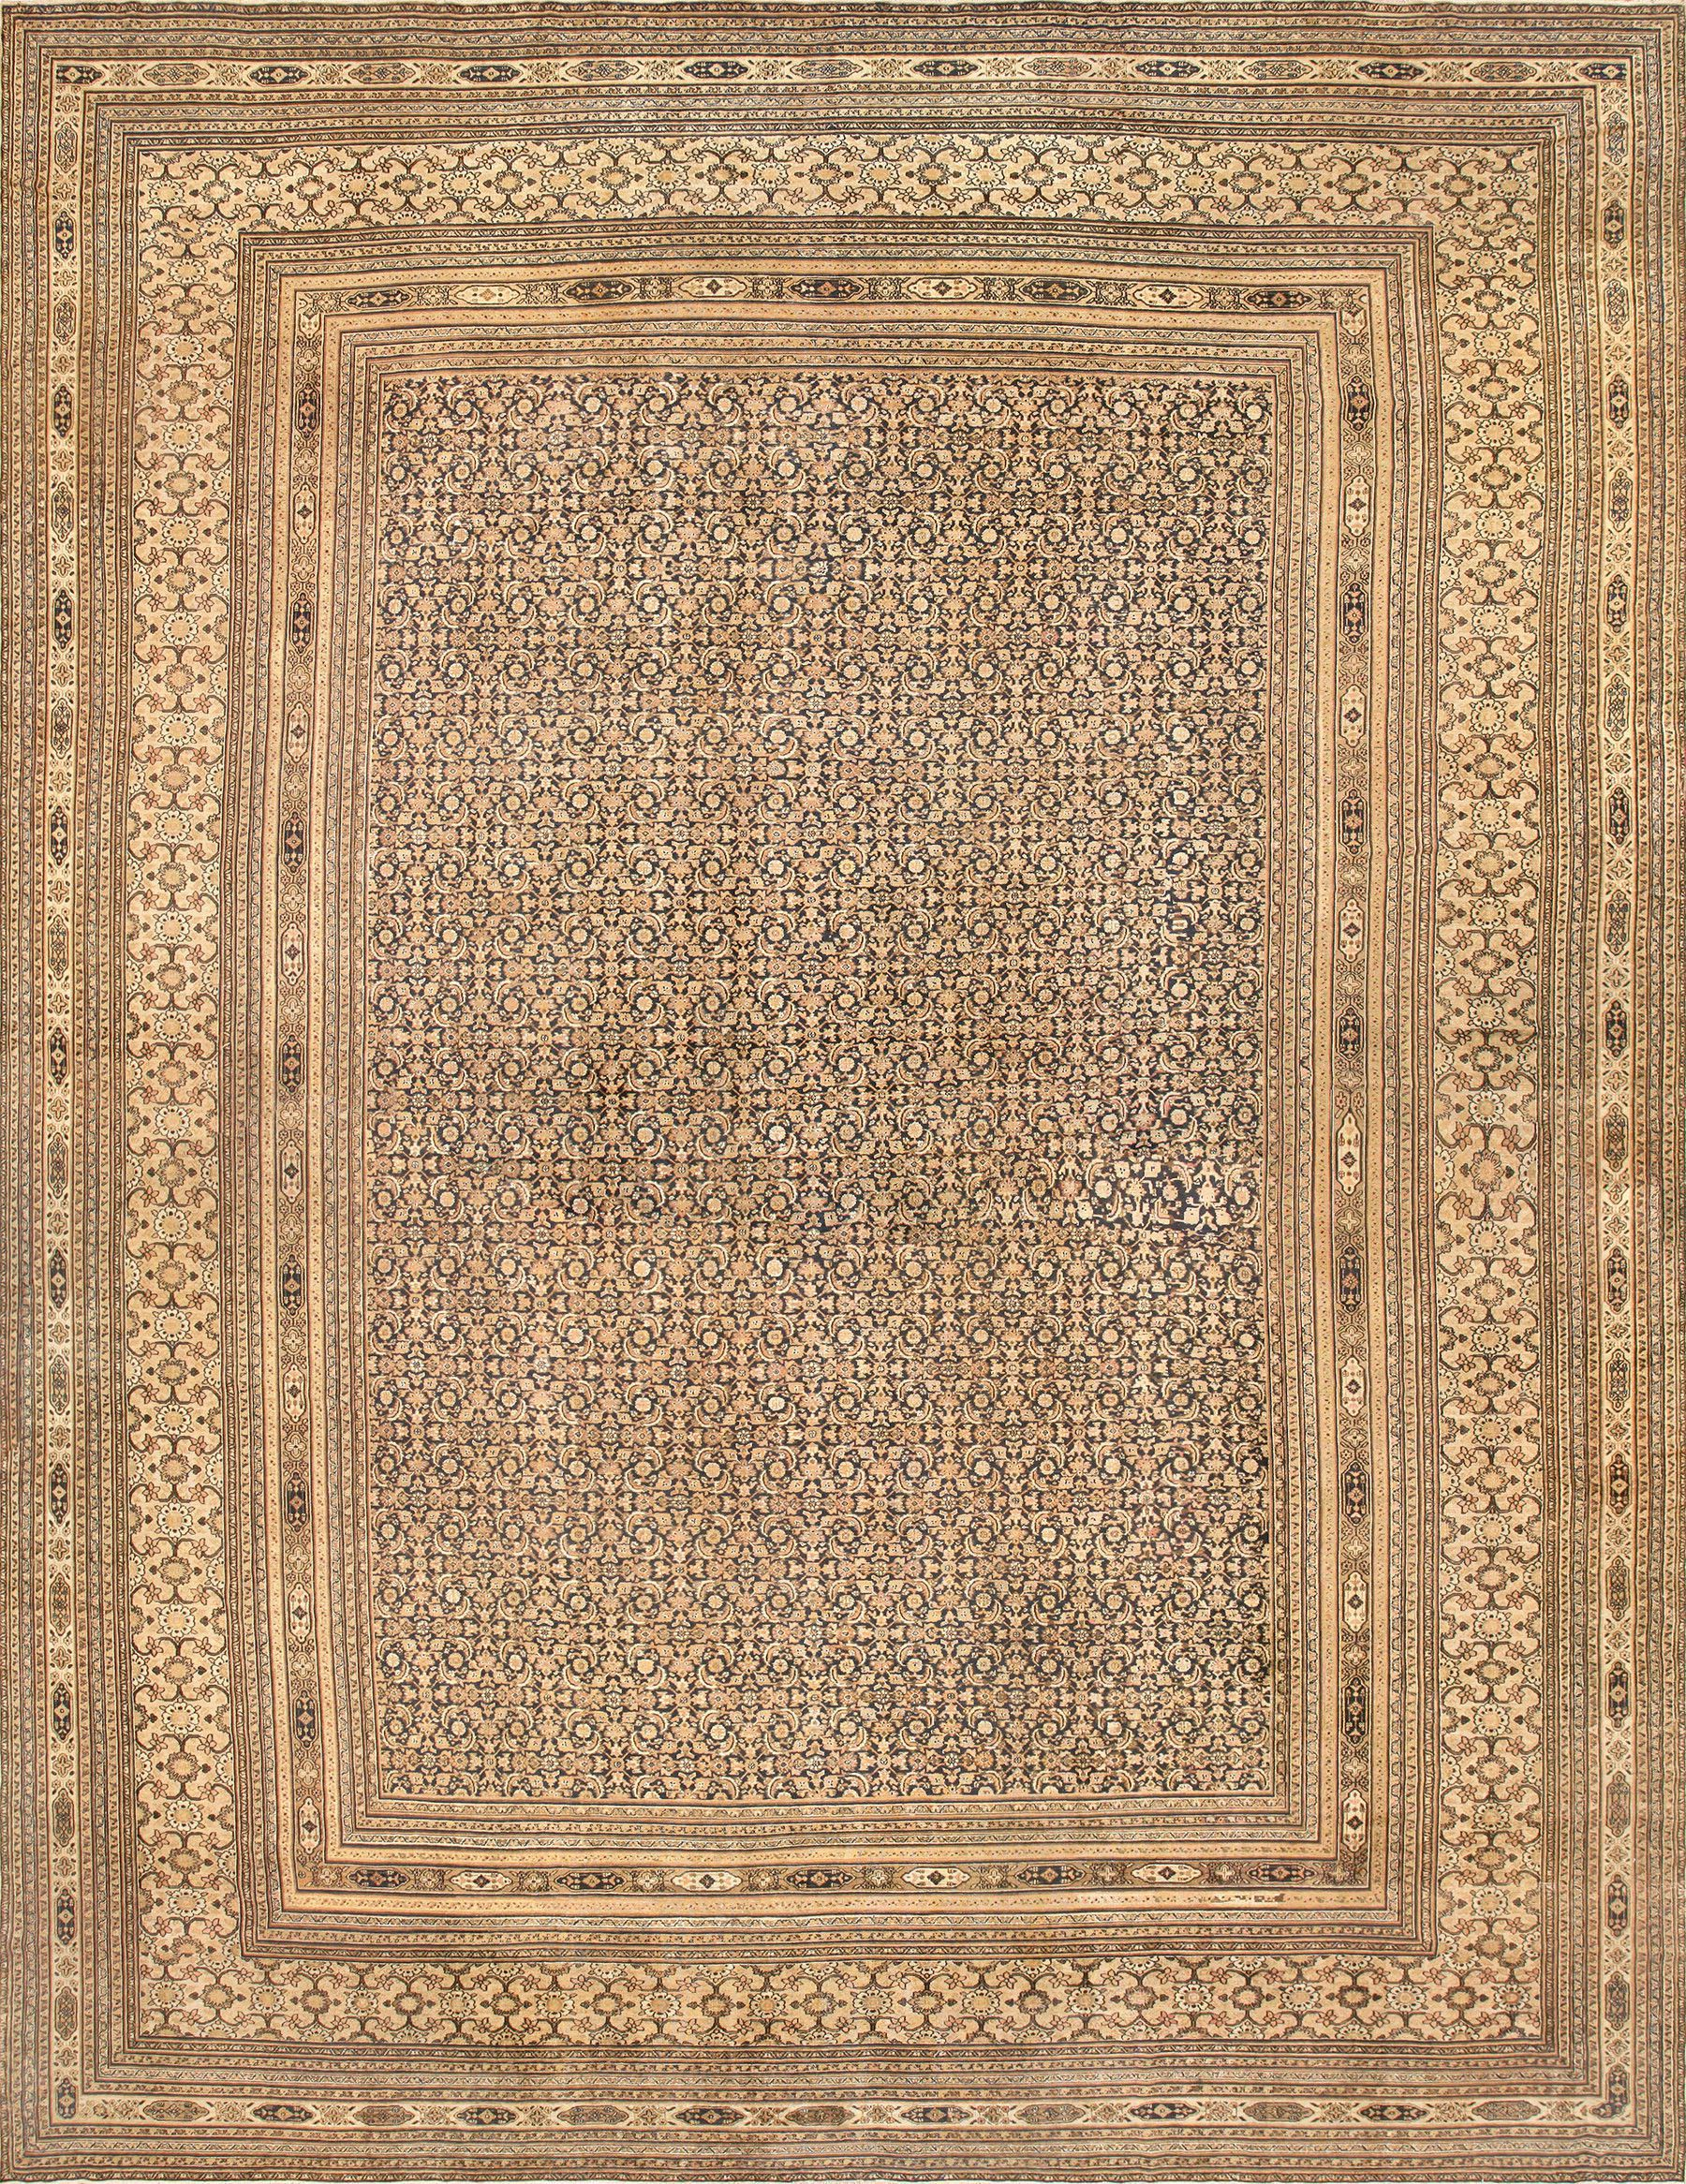 Herati Pattern In Rugs